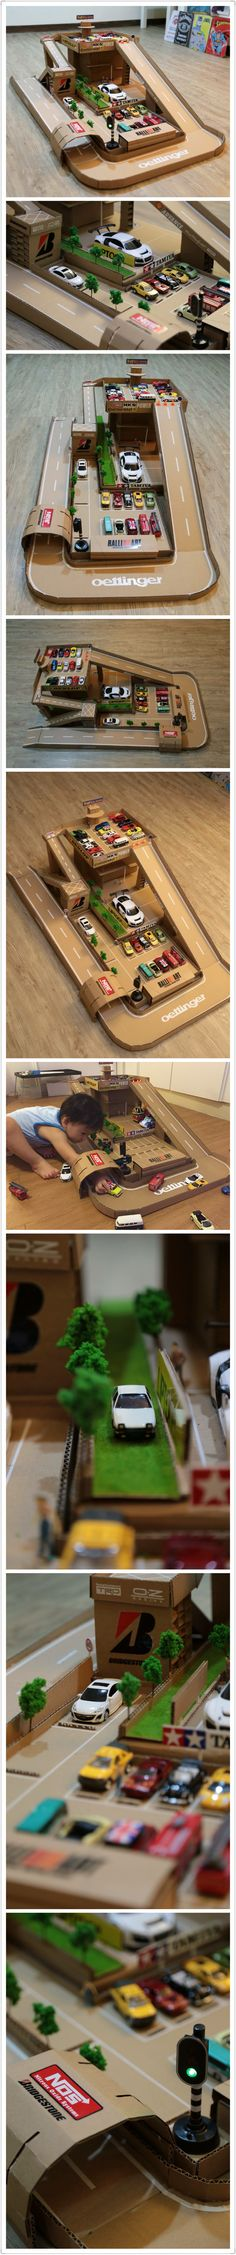 DIY toy car garage/car station/parking lots for my son.- DIY toy car garage/car station/parking lots for my son.Hope he won& de… DIY toy car garage/car station/parking lots for my son.Hope he won& destroy it too soon… - Projects For Kids, Diy For Kids, Crafts For Kids, Diy Projects, Toys For Boys, Kids Toys, Boy Toys, Diy Toys Car, Cardboard Crafts